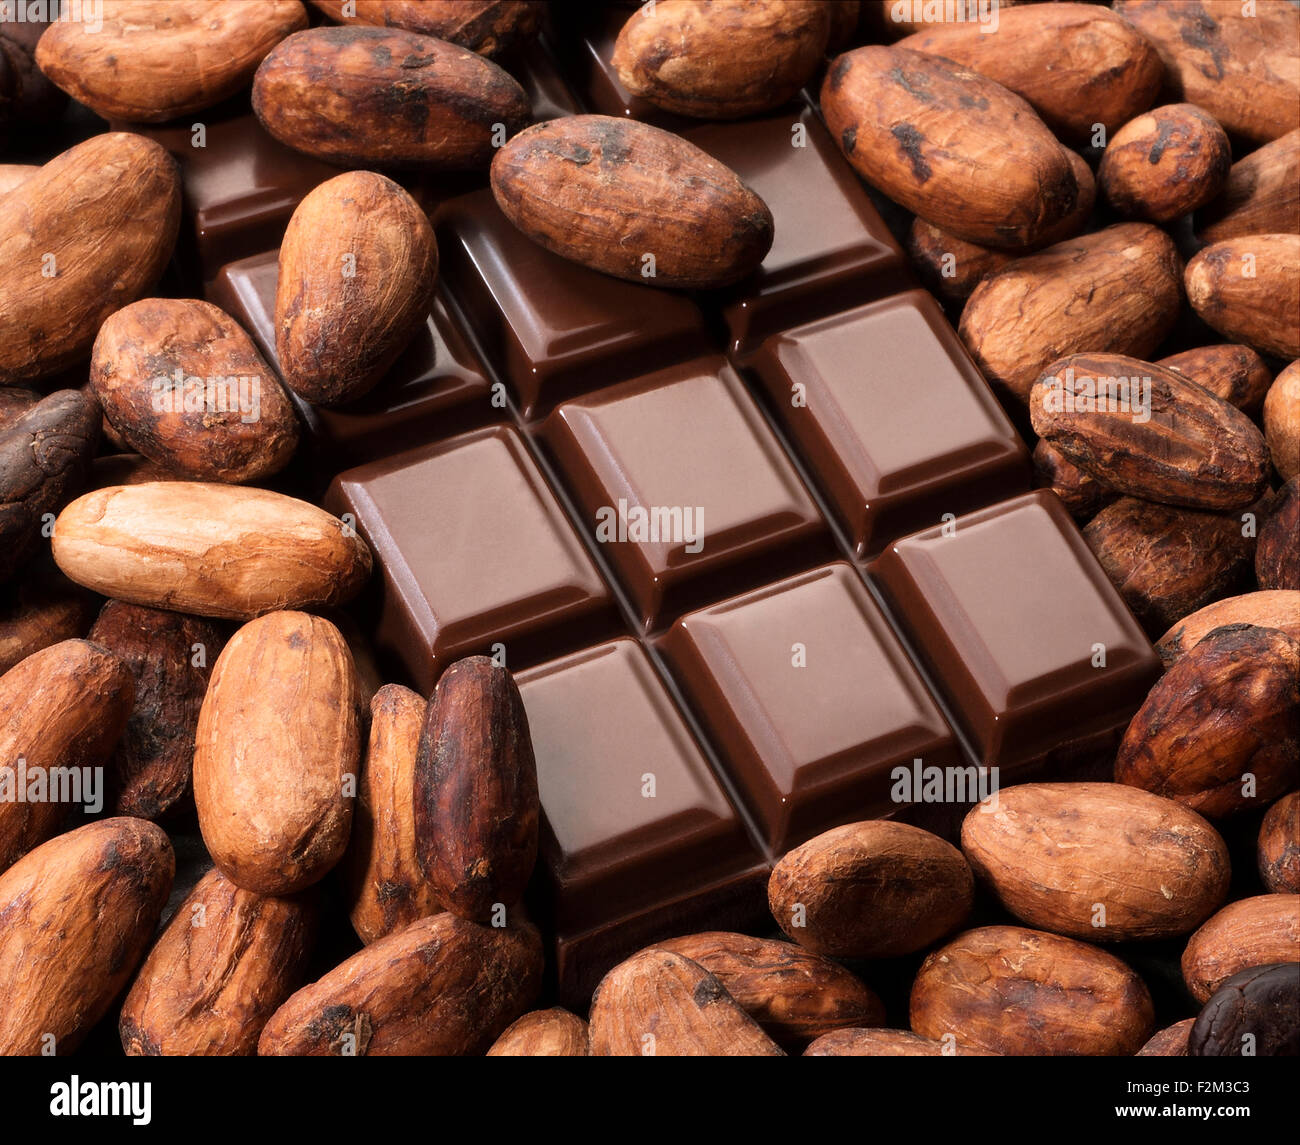 Cocoa beans and chocolate bar. - Stock Image